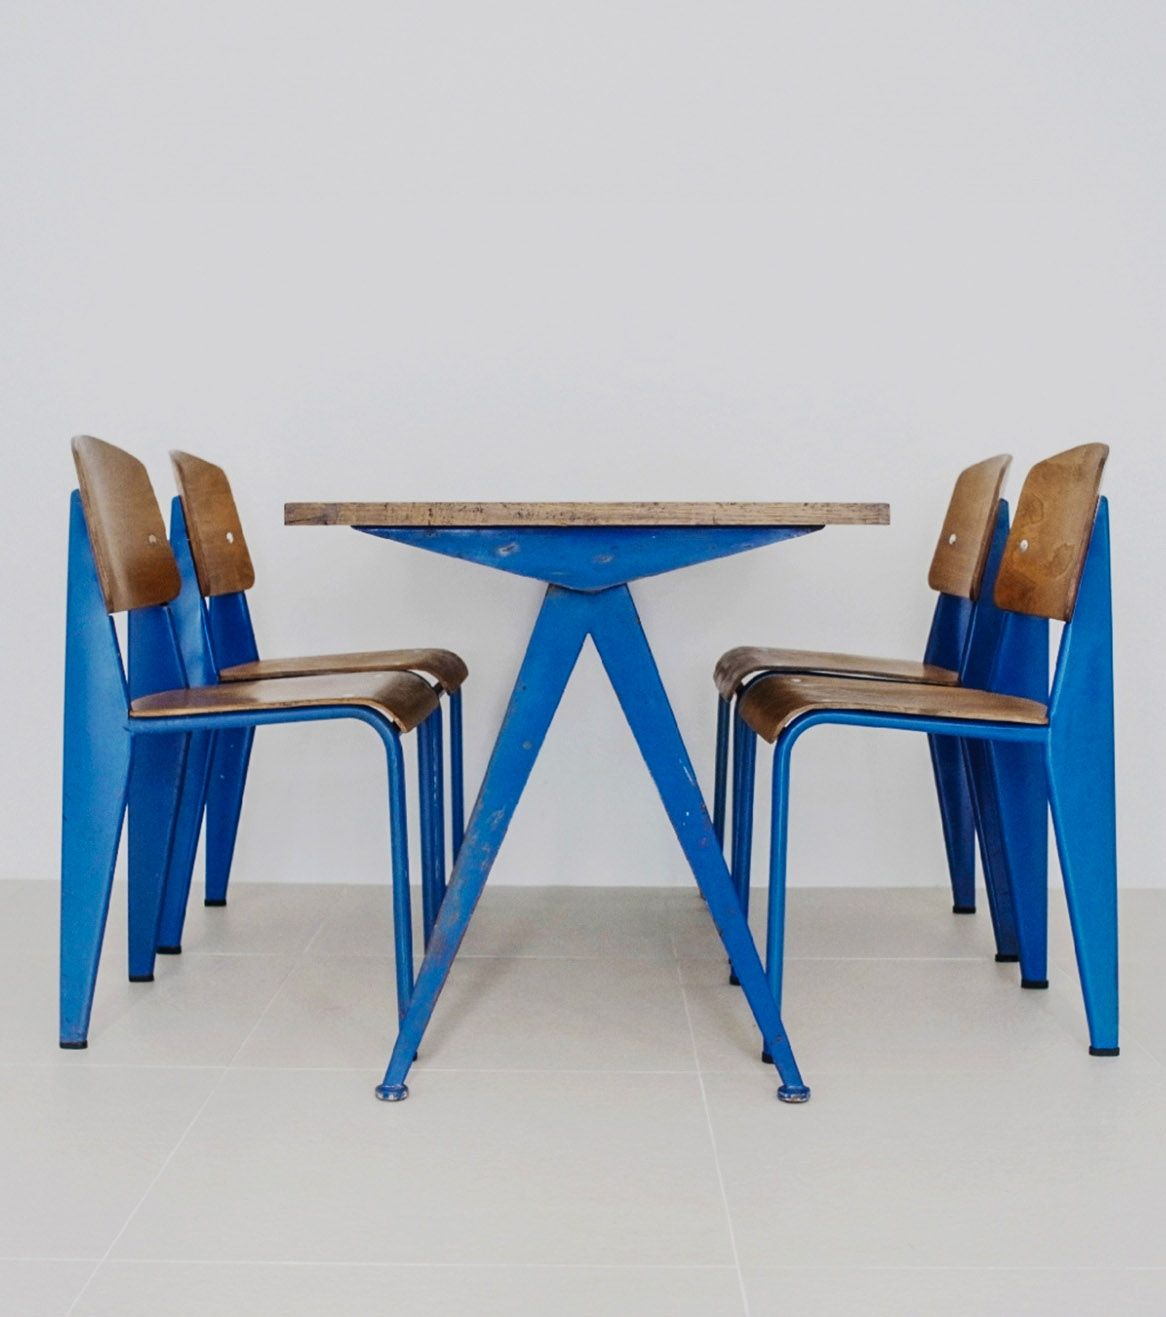 Compass table (1953) and Standard dining chairs (1950) by Jean Prouvé